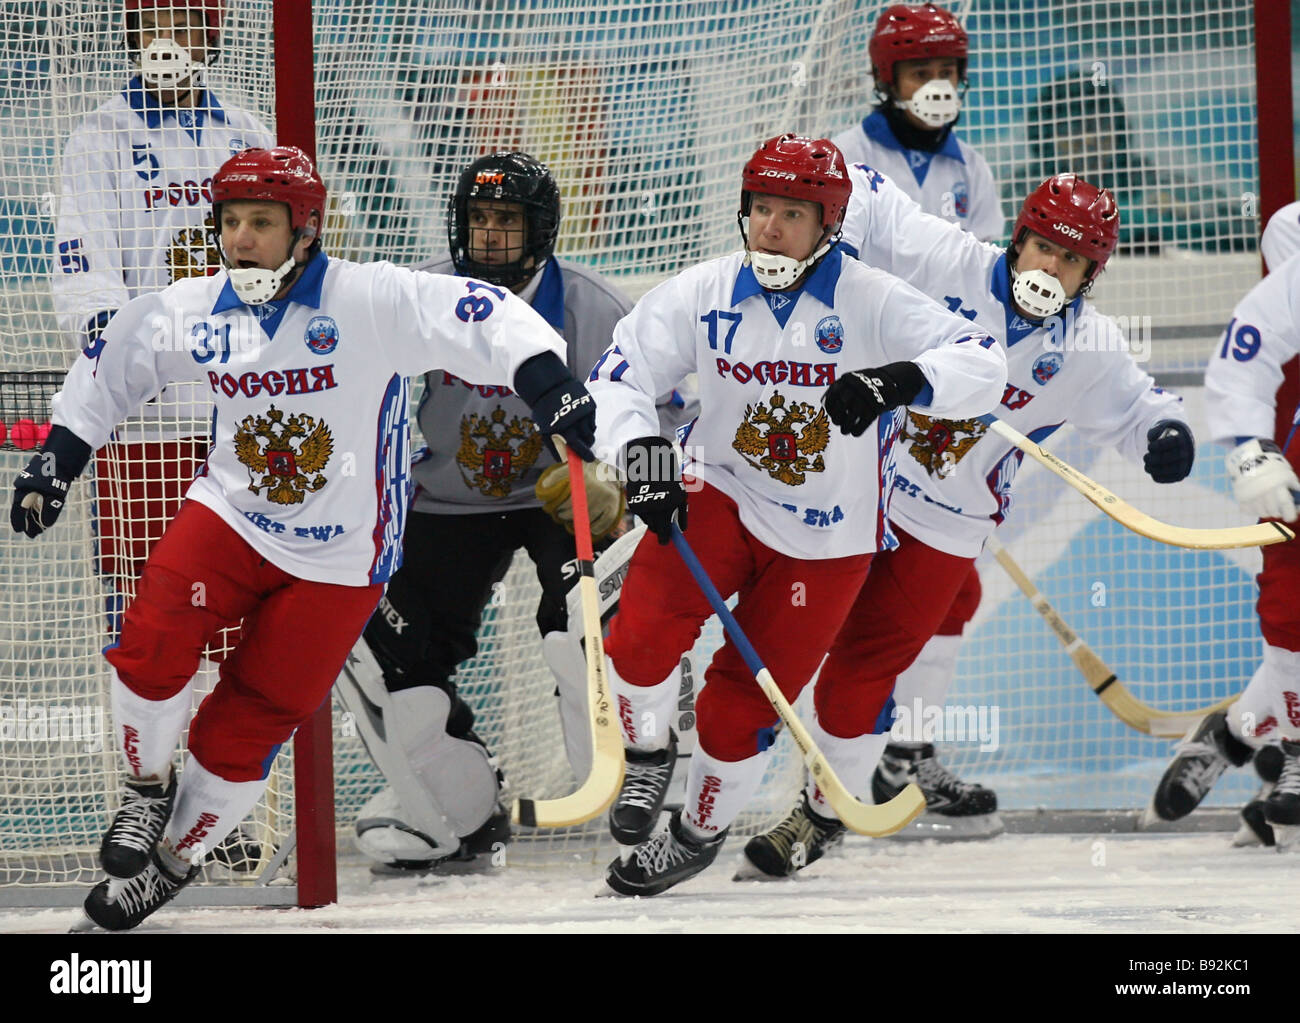 Russian ball hockey players defending their goal - Stock Image